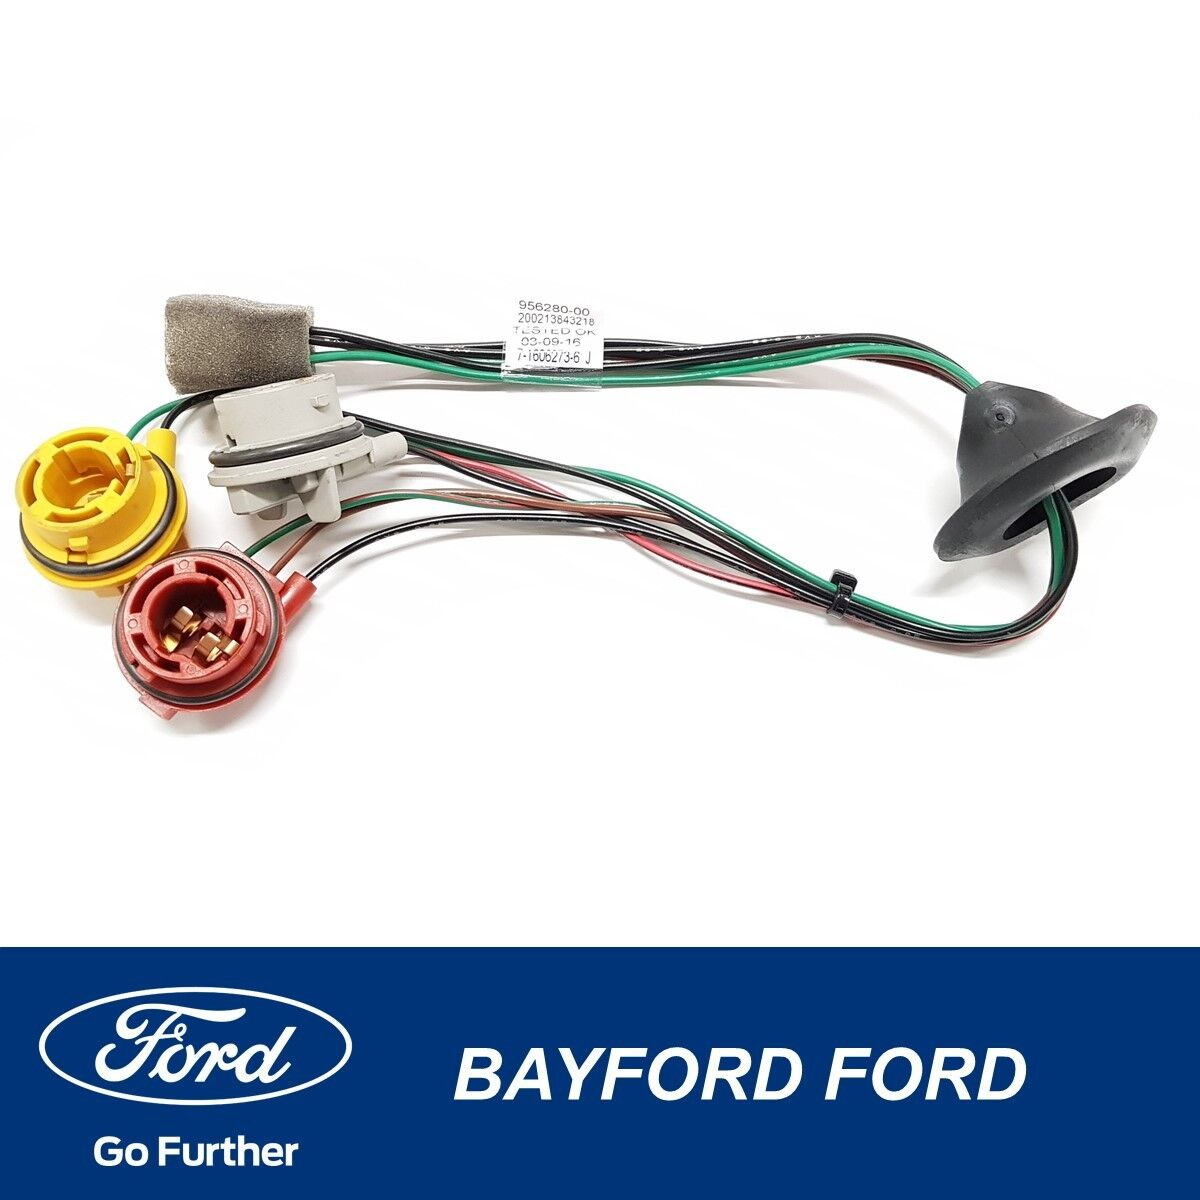 Ford Falcon Wiring Harness - Wiring Diagram K9